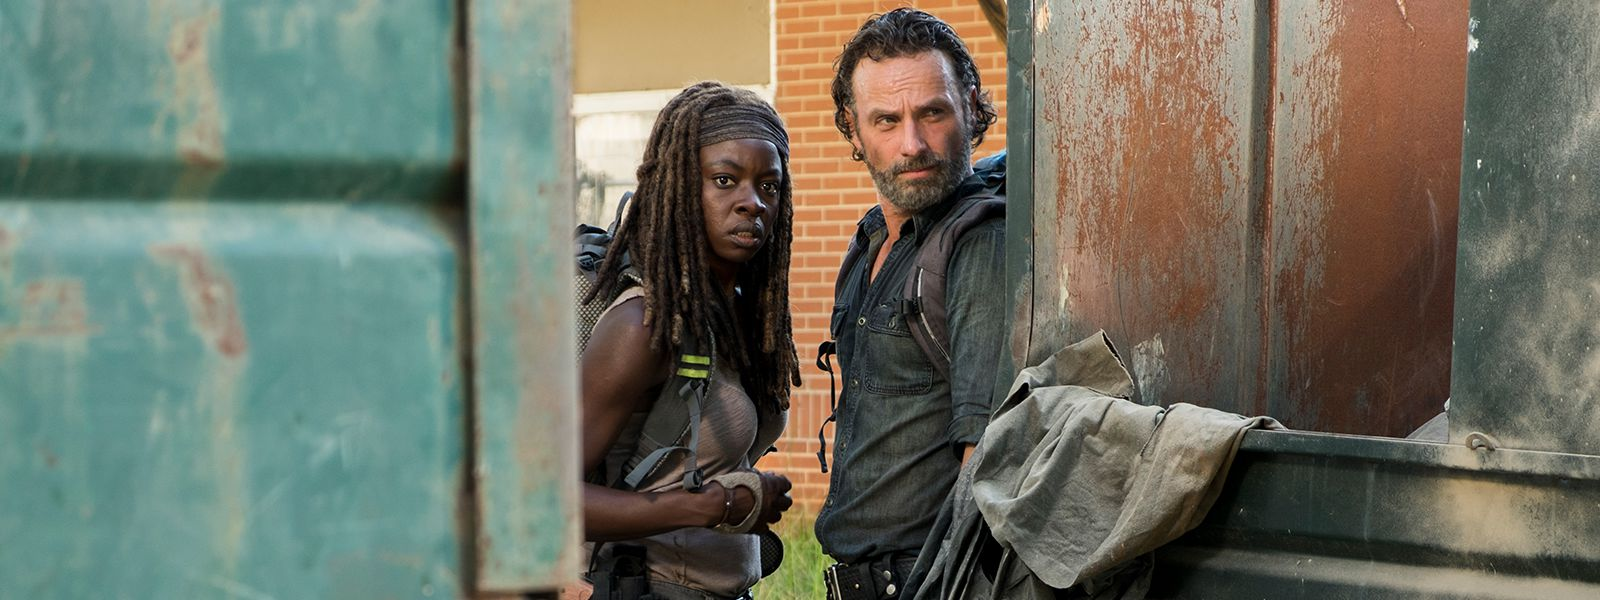 the-walking-dead-episode-712-michonne-gurira-rick-lincoln-pre-800×600